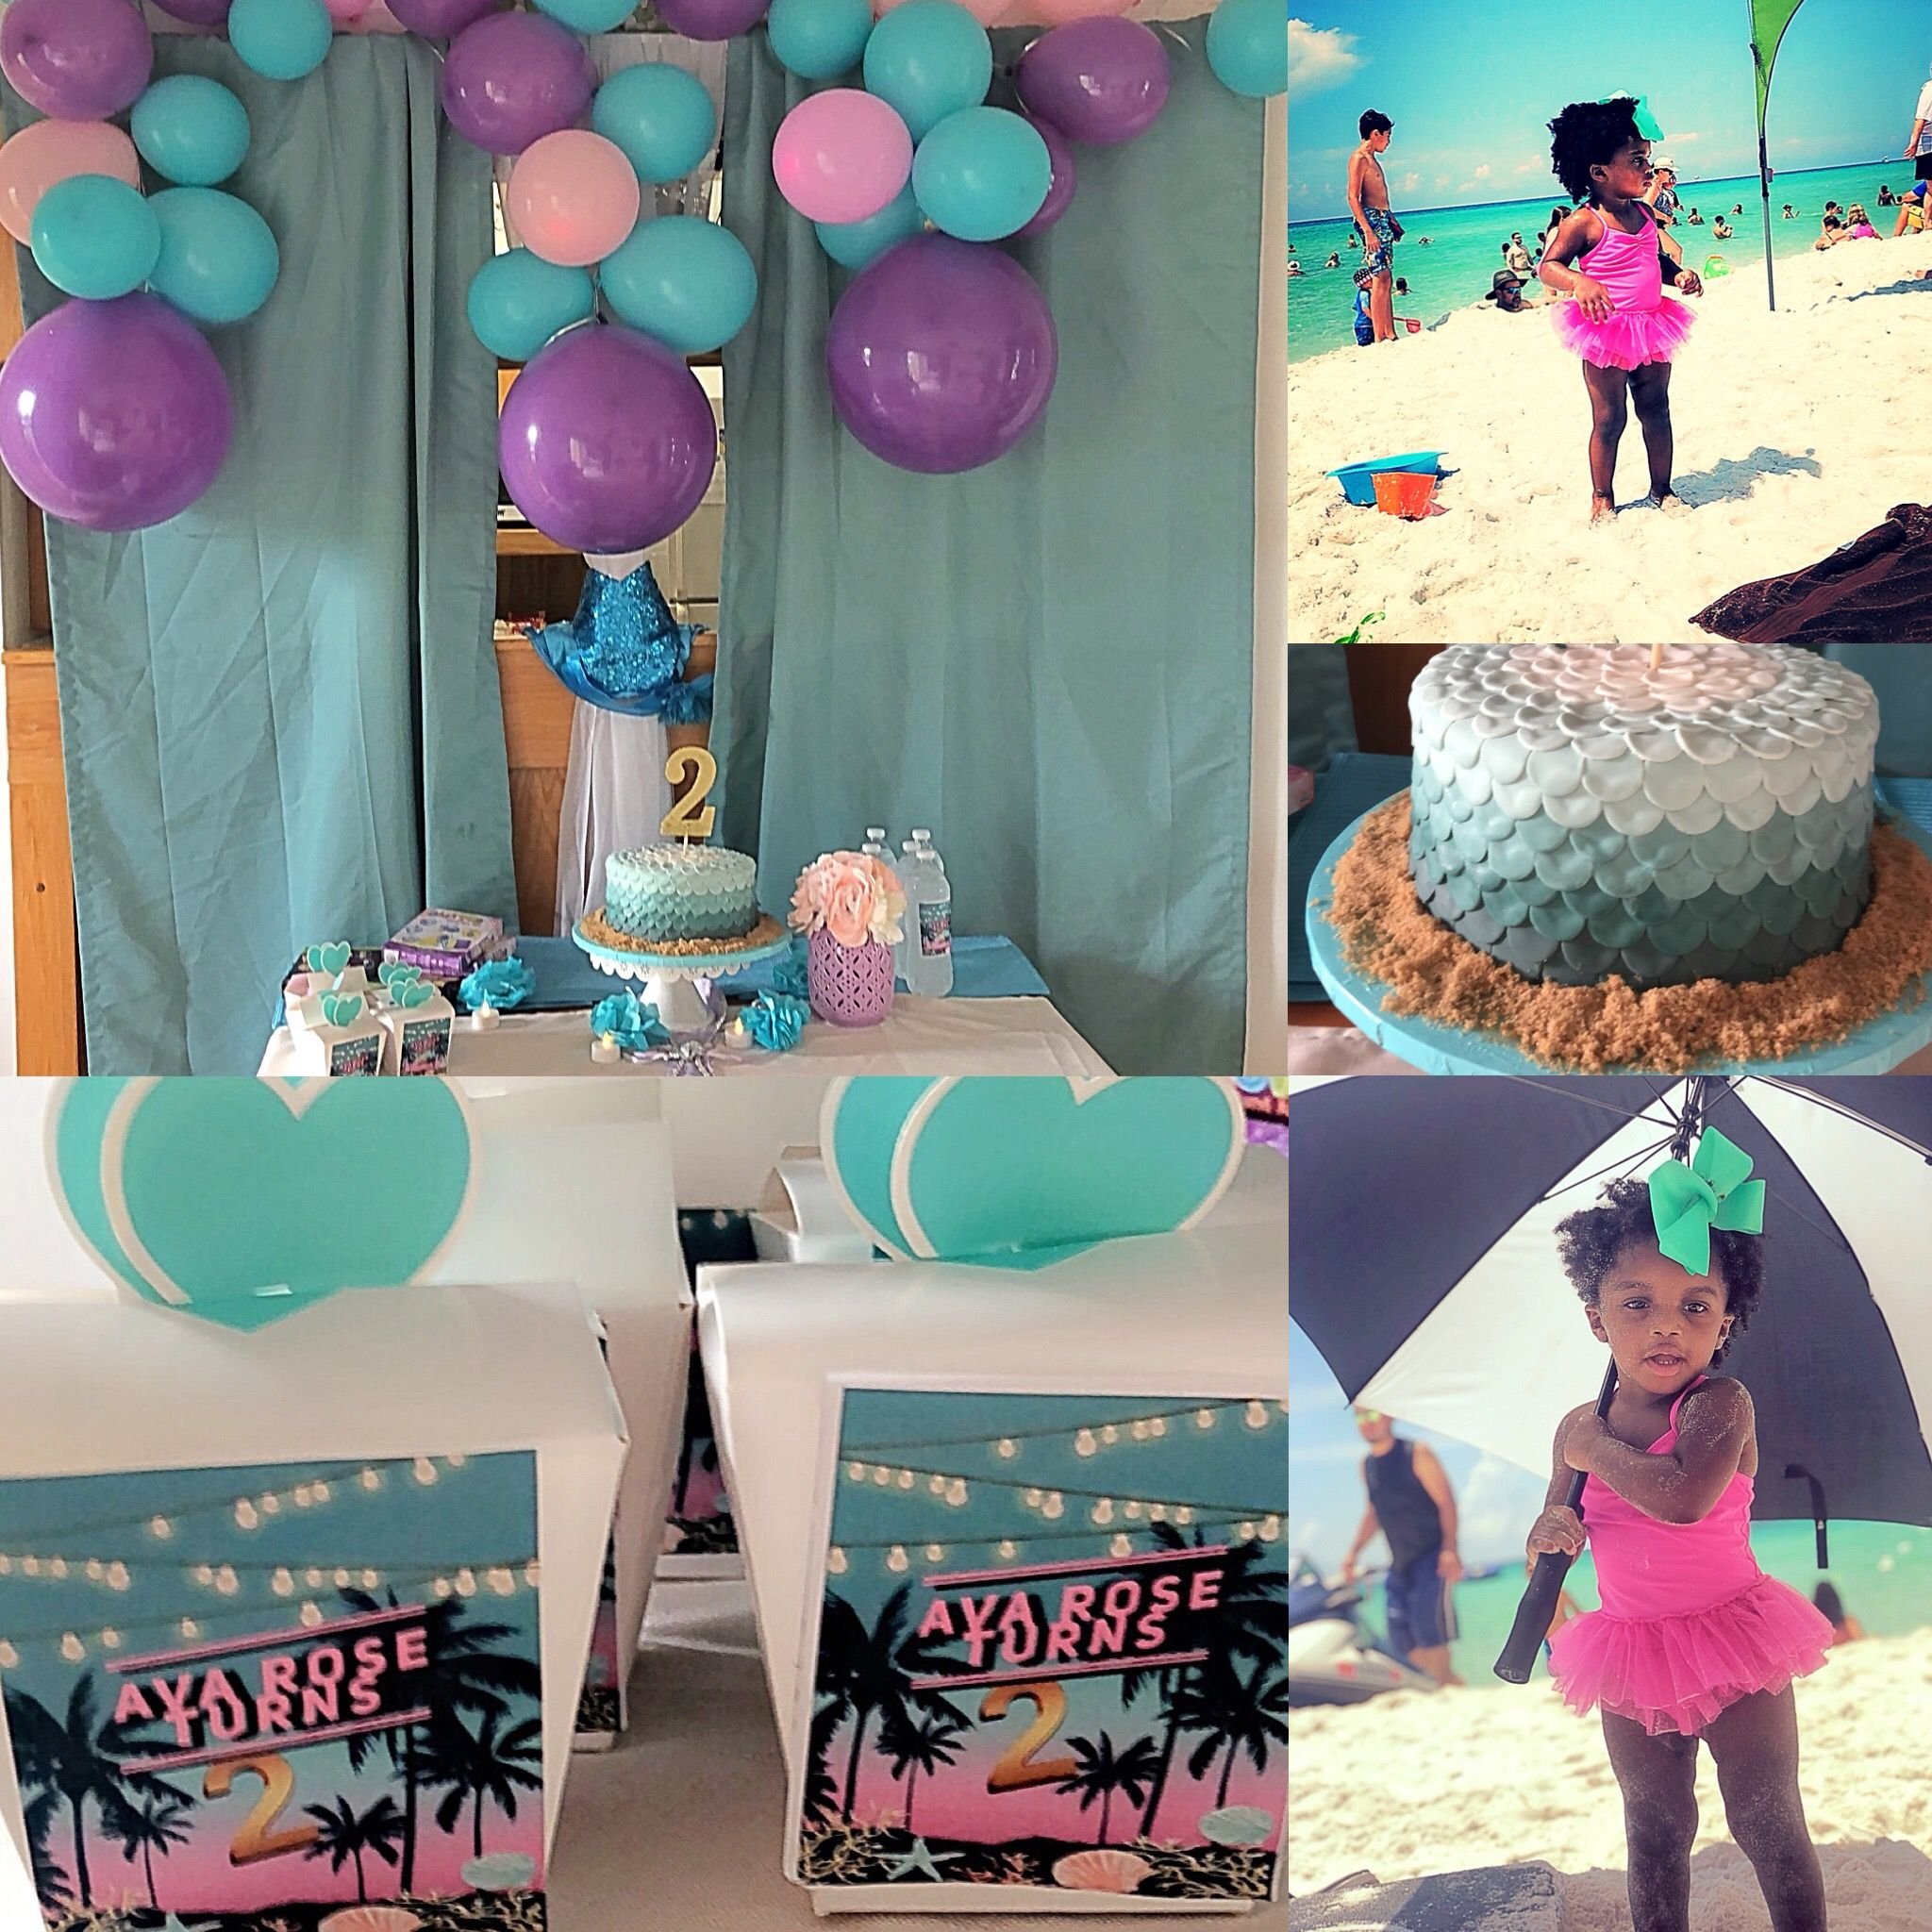 2 Year Old Birthday Party Girl Ideas Beach Birthday Party 2 Year Old Birthday Party Girl 2 Year Old Birthday Party